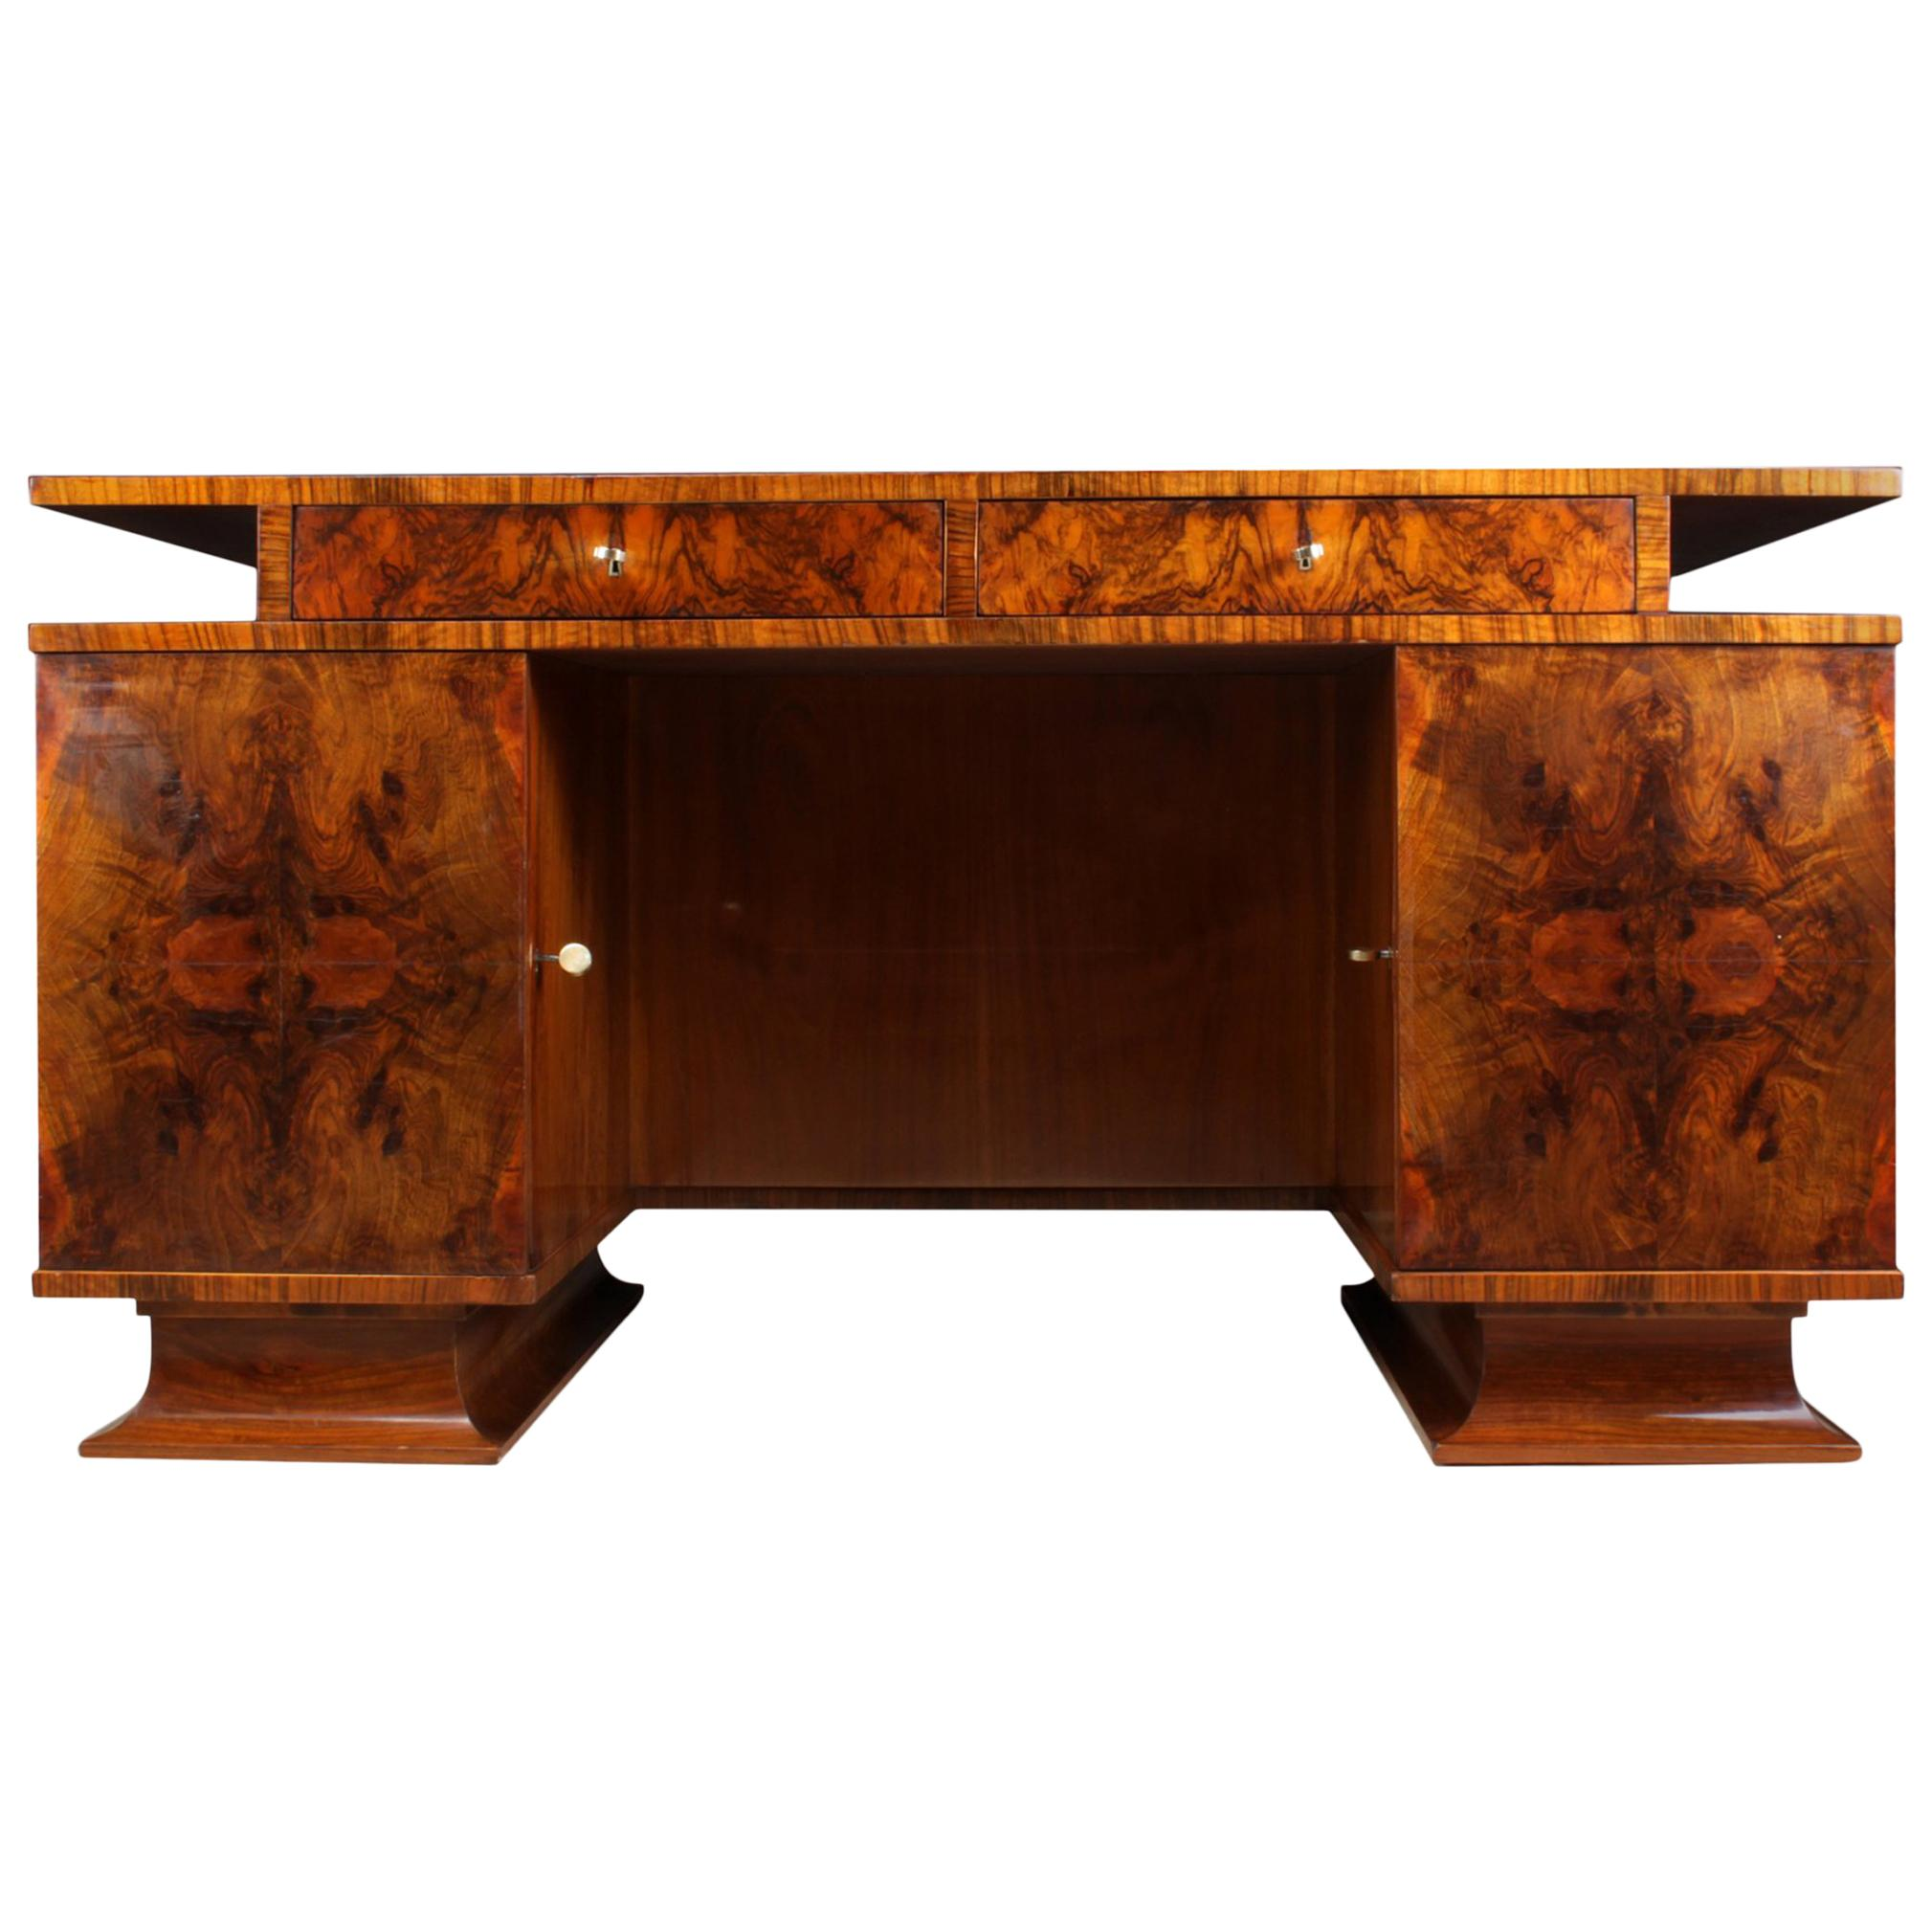 italian art deco desk in walnut for sale at 1stdibs rh 1stdibs com art deco design-windlicht sparkle art deco desk